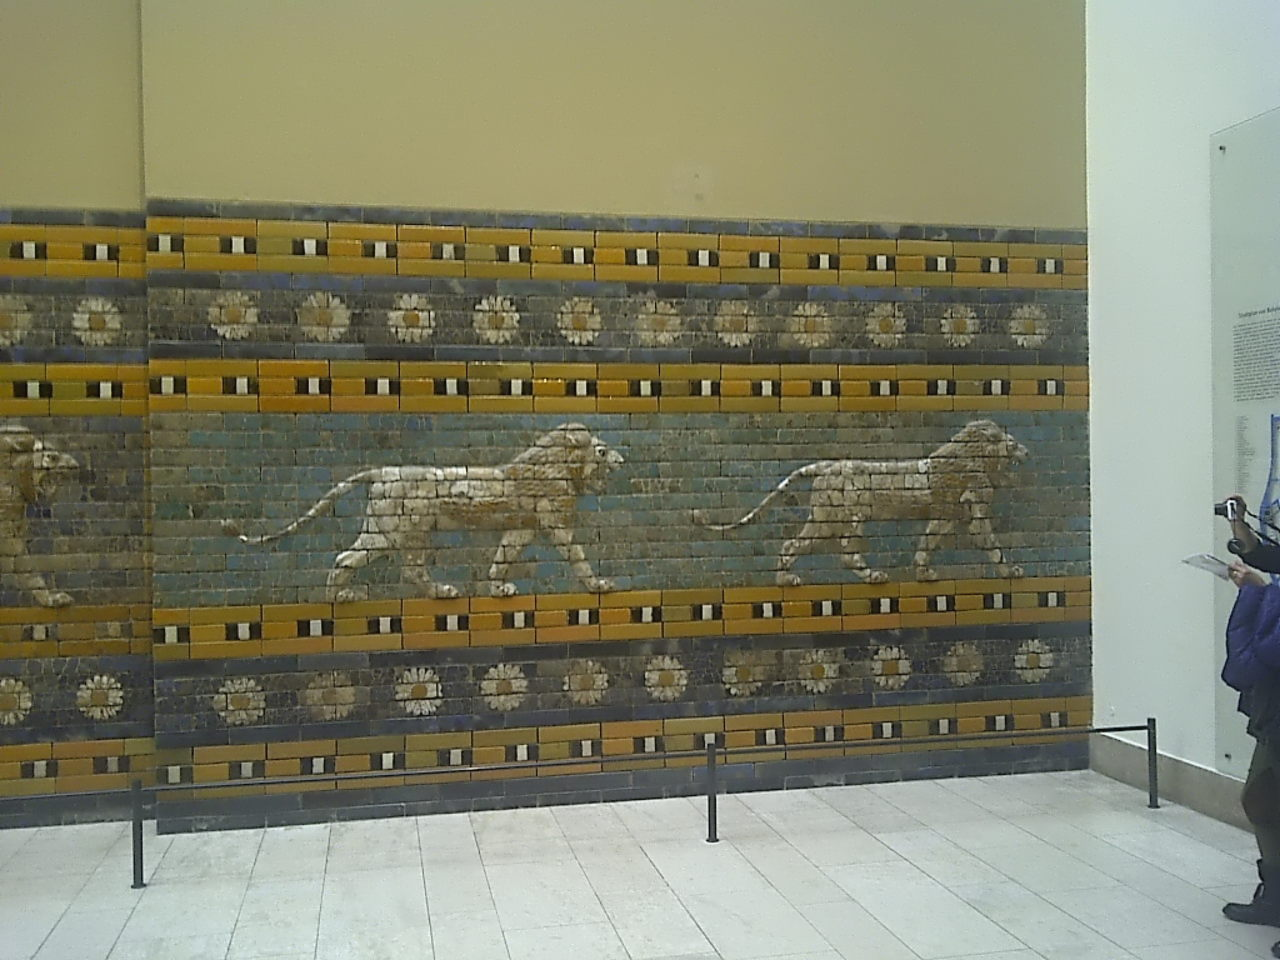 Ishtar Gate, procession street lions